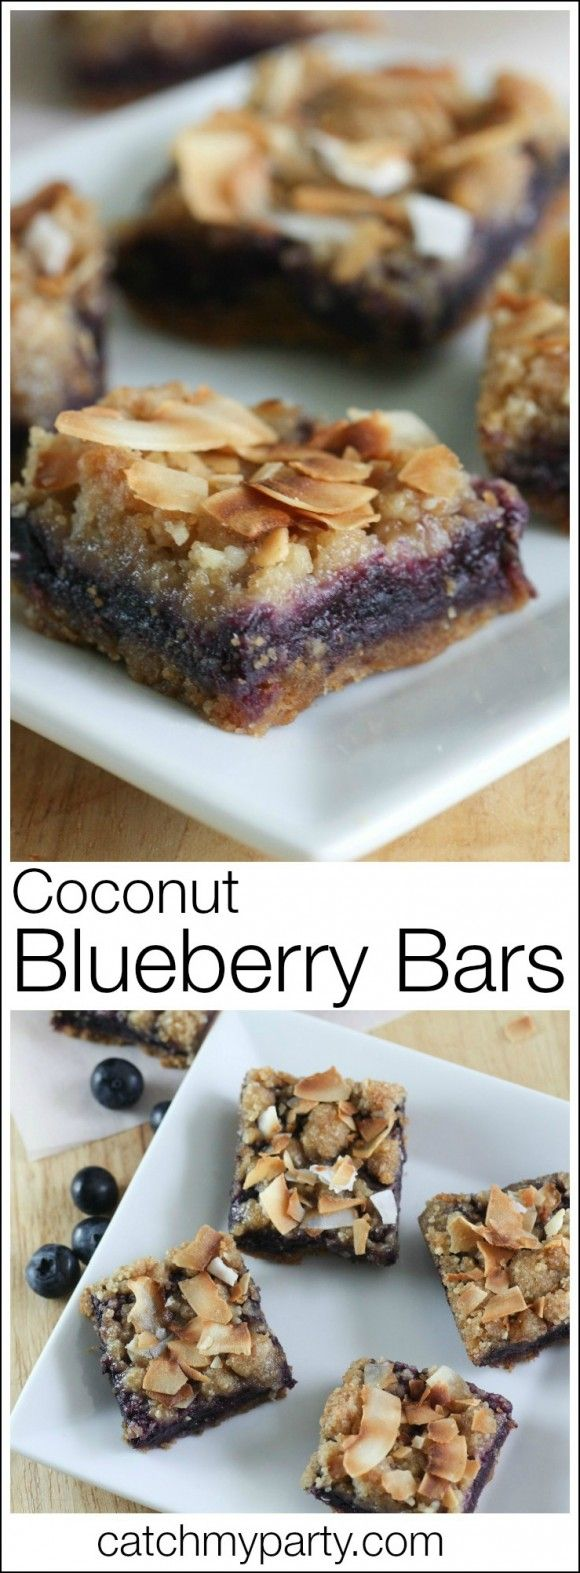 25+ best ideas about Blueberry Bars on Pinterest ...